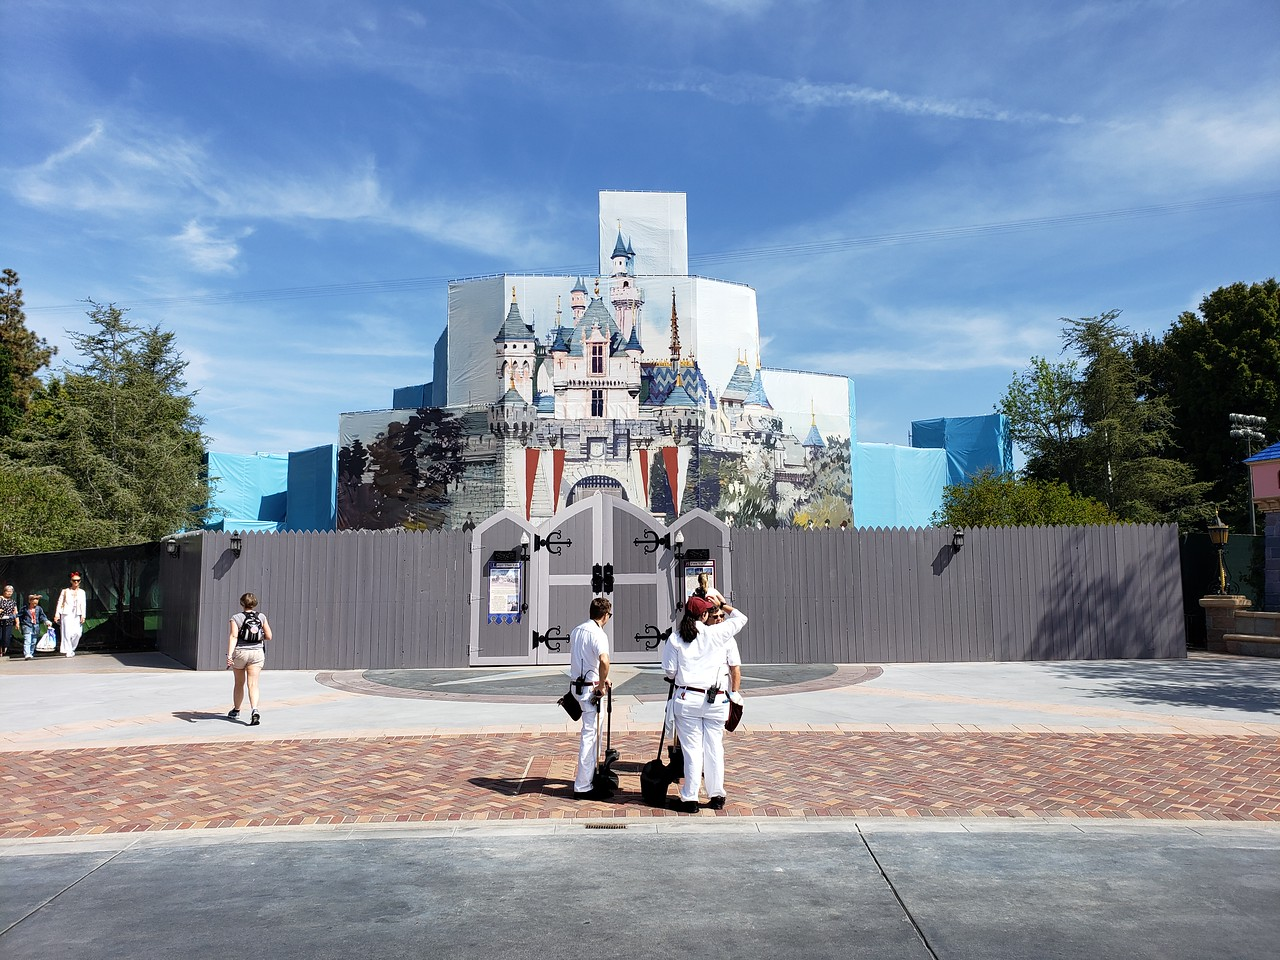 PICTORIAL: Big changes as Project Stardust shakes up every inch of Disneyland; Star Wars expansion, Pixar Parking, and more